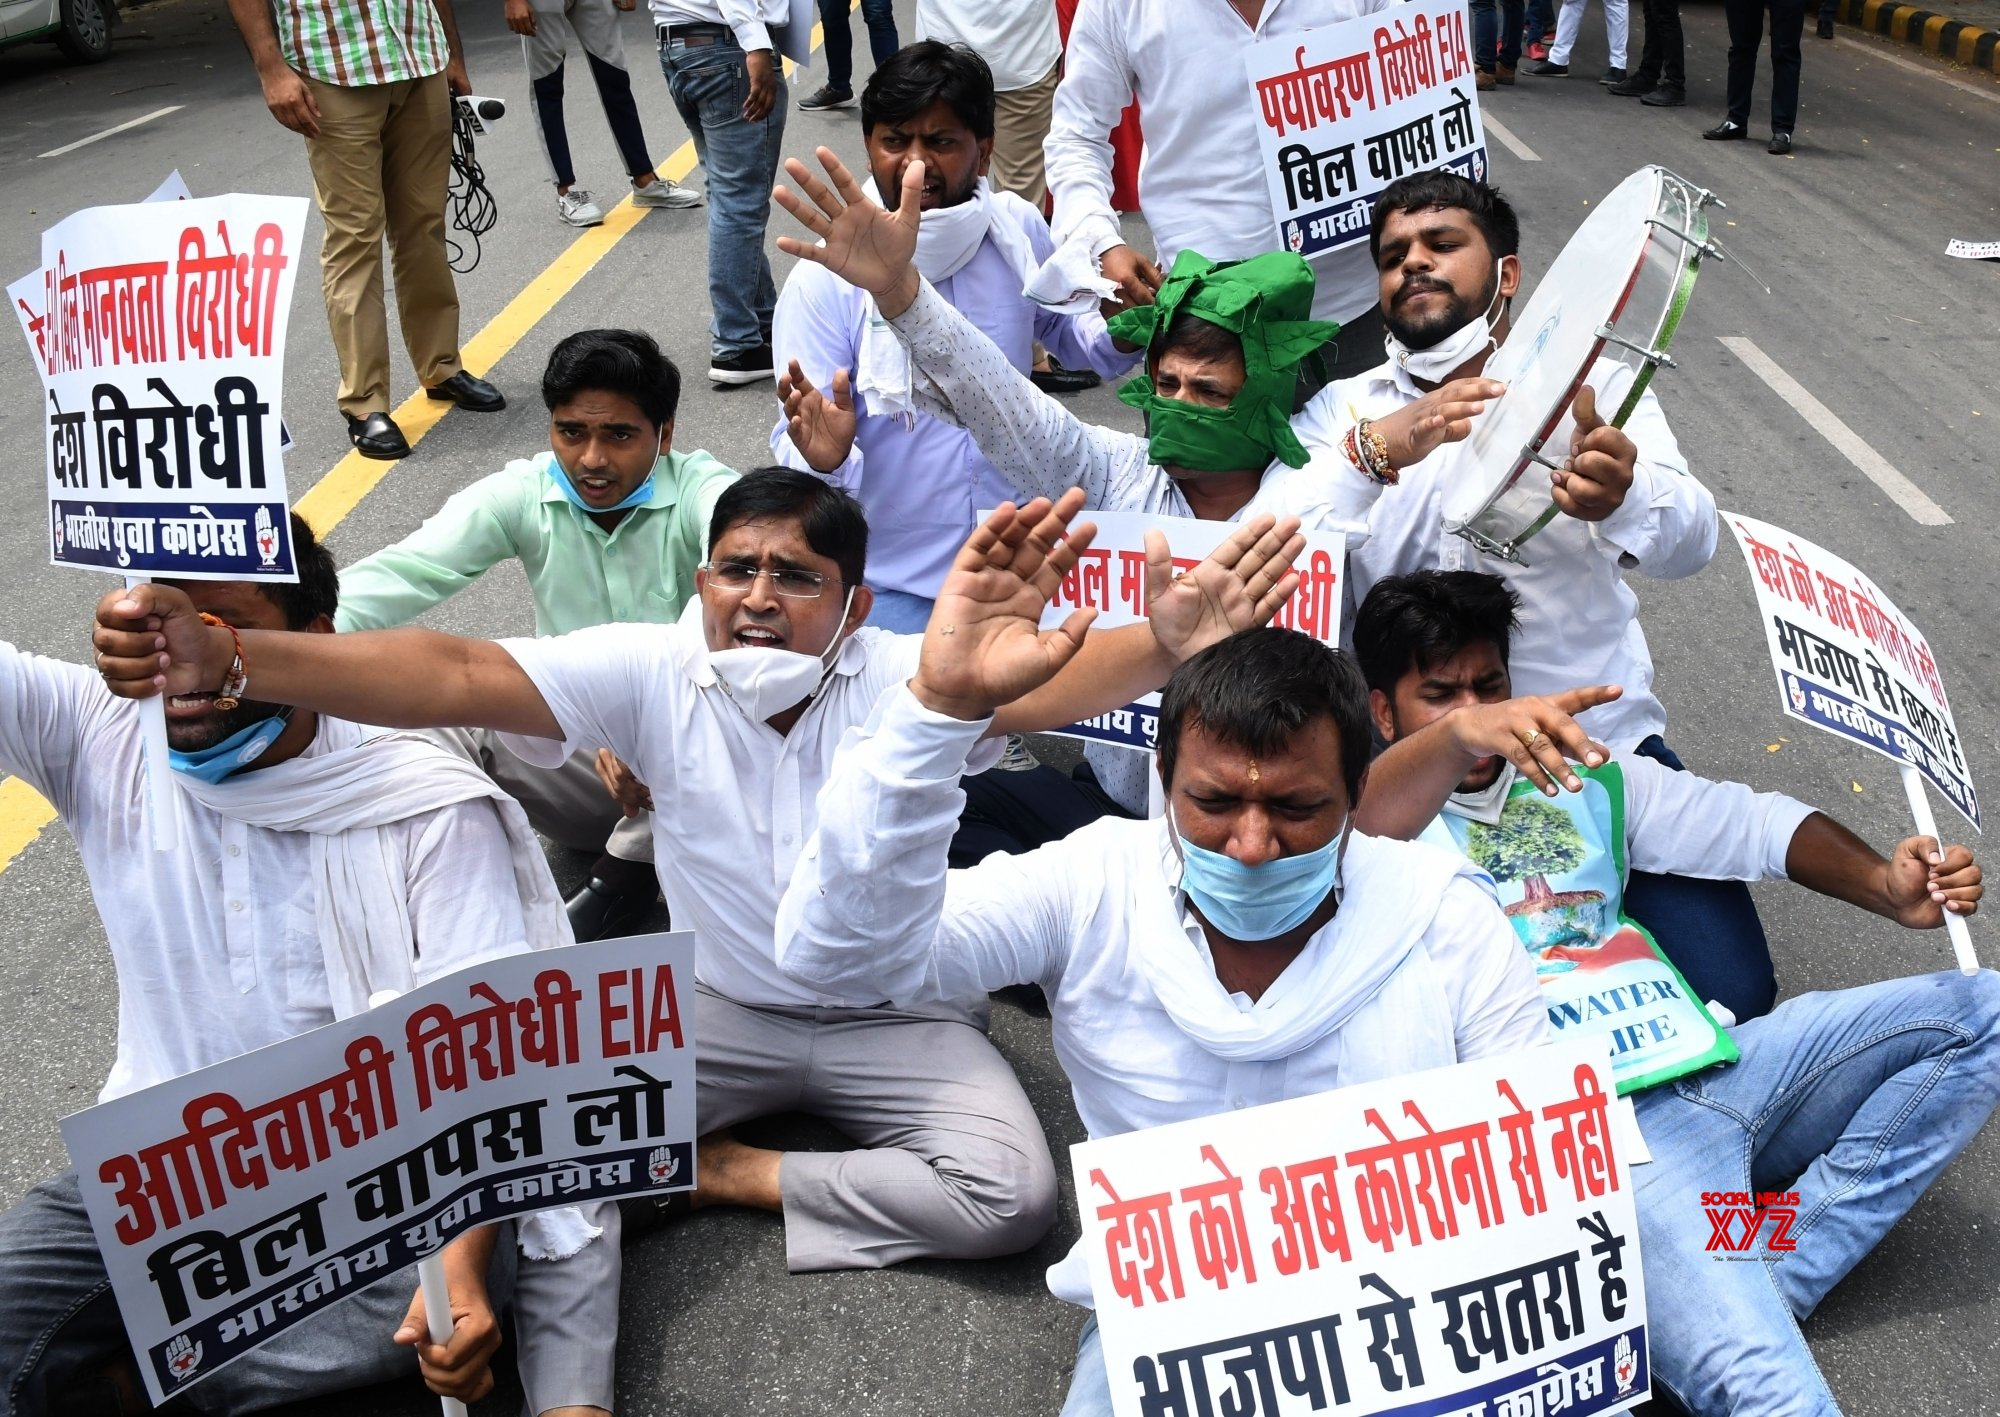 New Delhi: Congress activists protest outside Prakash Javadekar's residence #Gallery